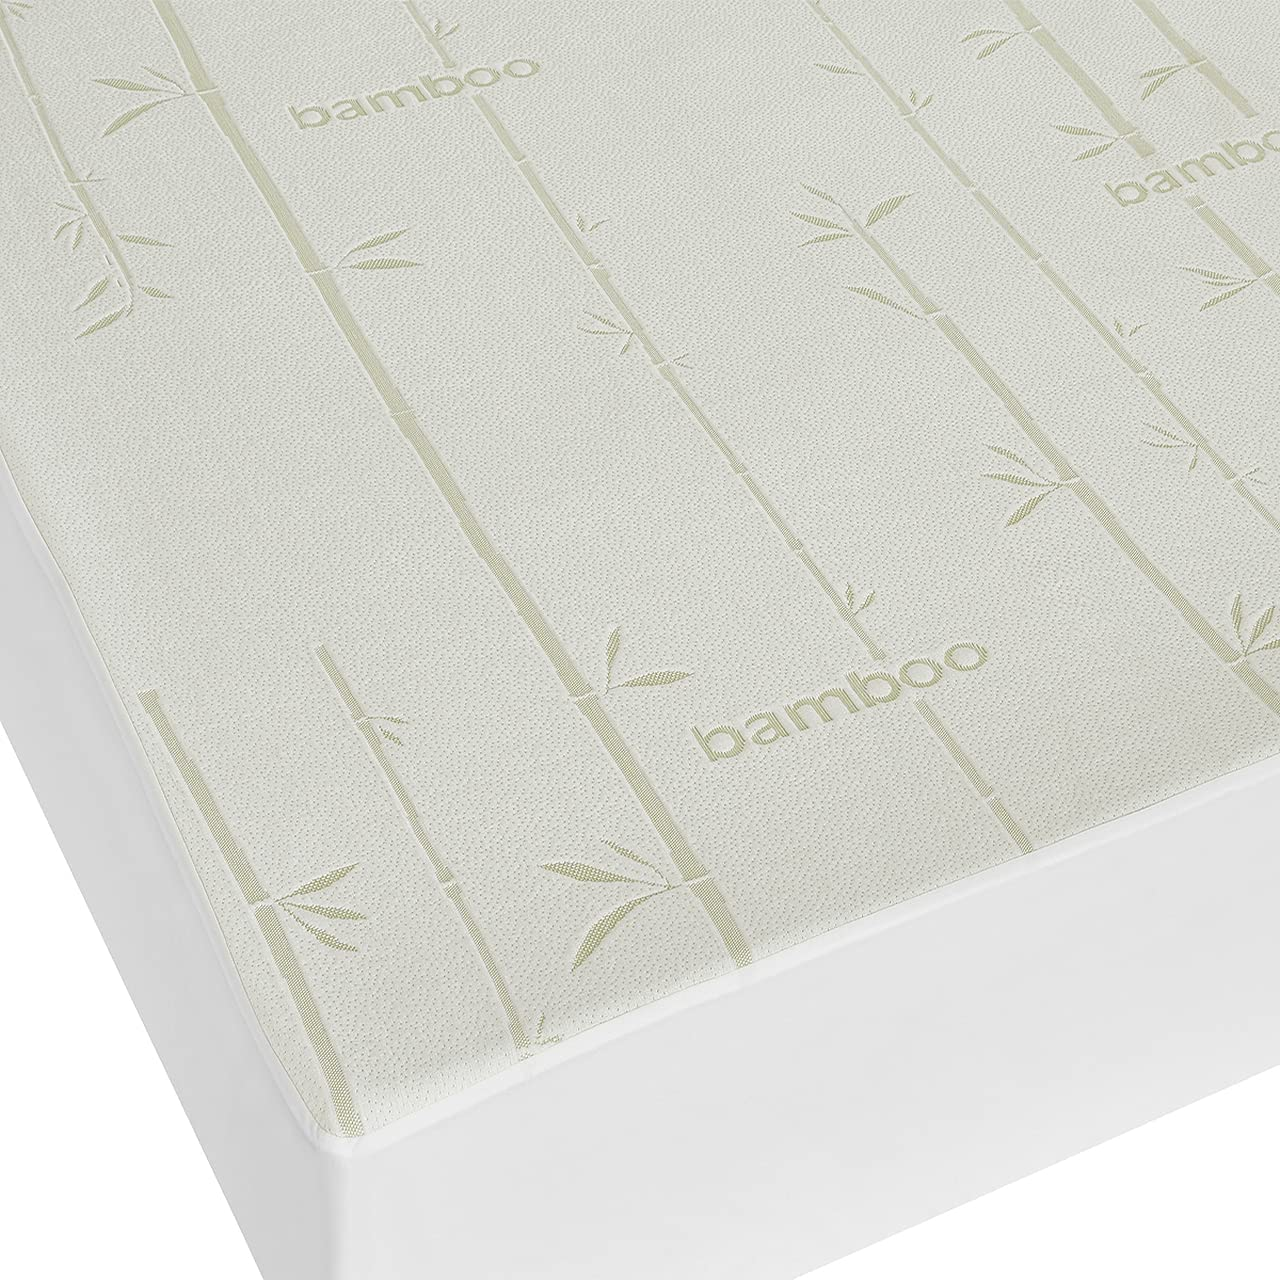 Royal Bedding Premium Hypoallergenic Sales for sale Mattress Free shipping anywhere in the nation Bamboo Protector